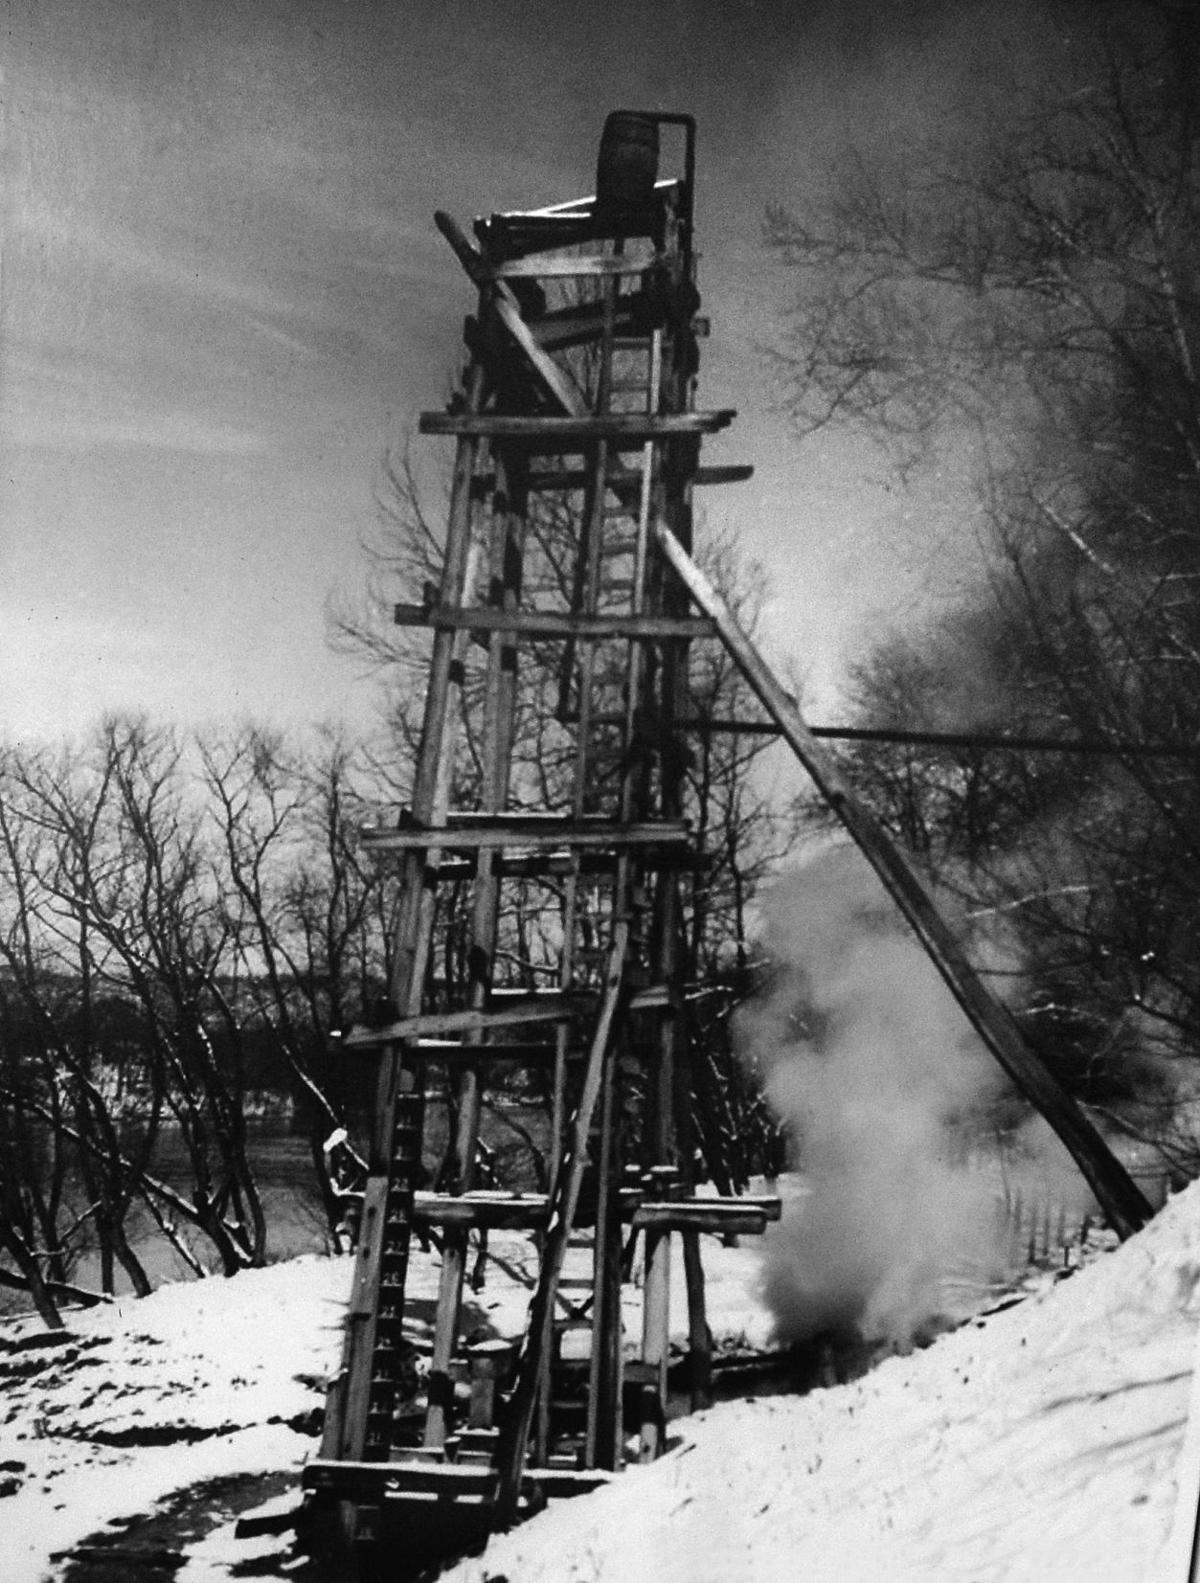 Historical photo of a salt well at J.Q. Dickinson & Co.